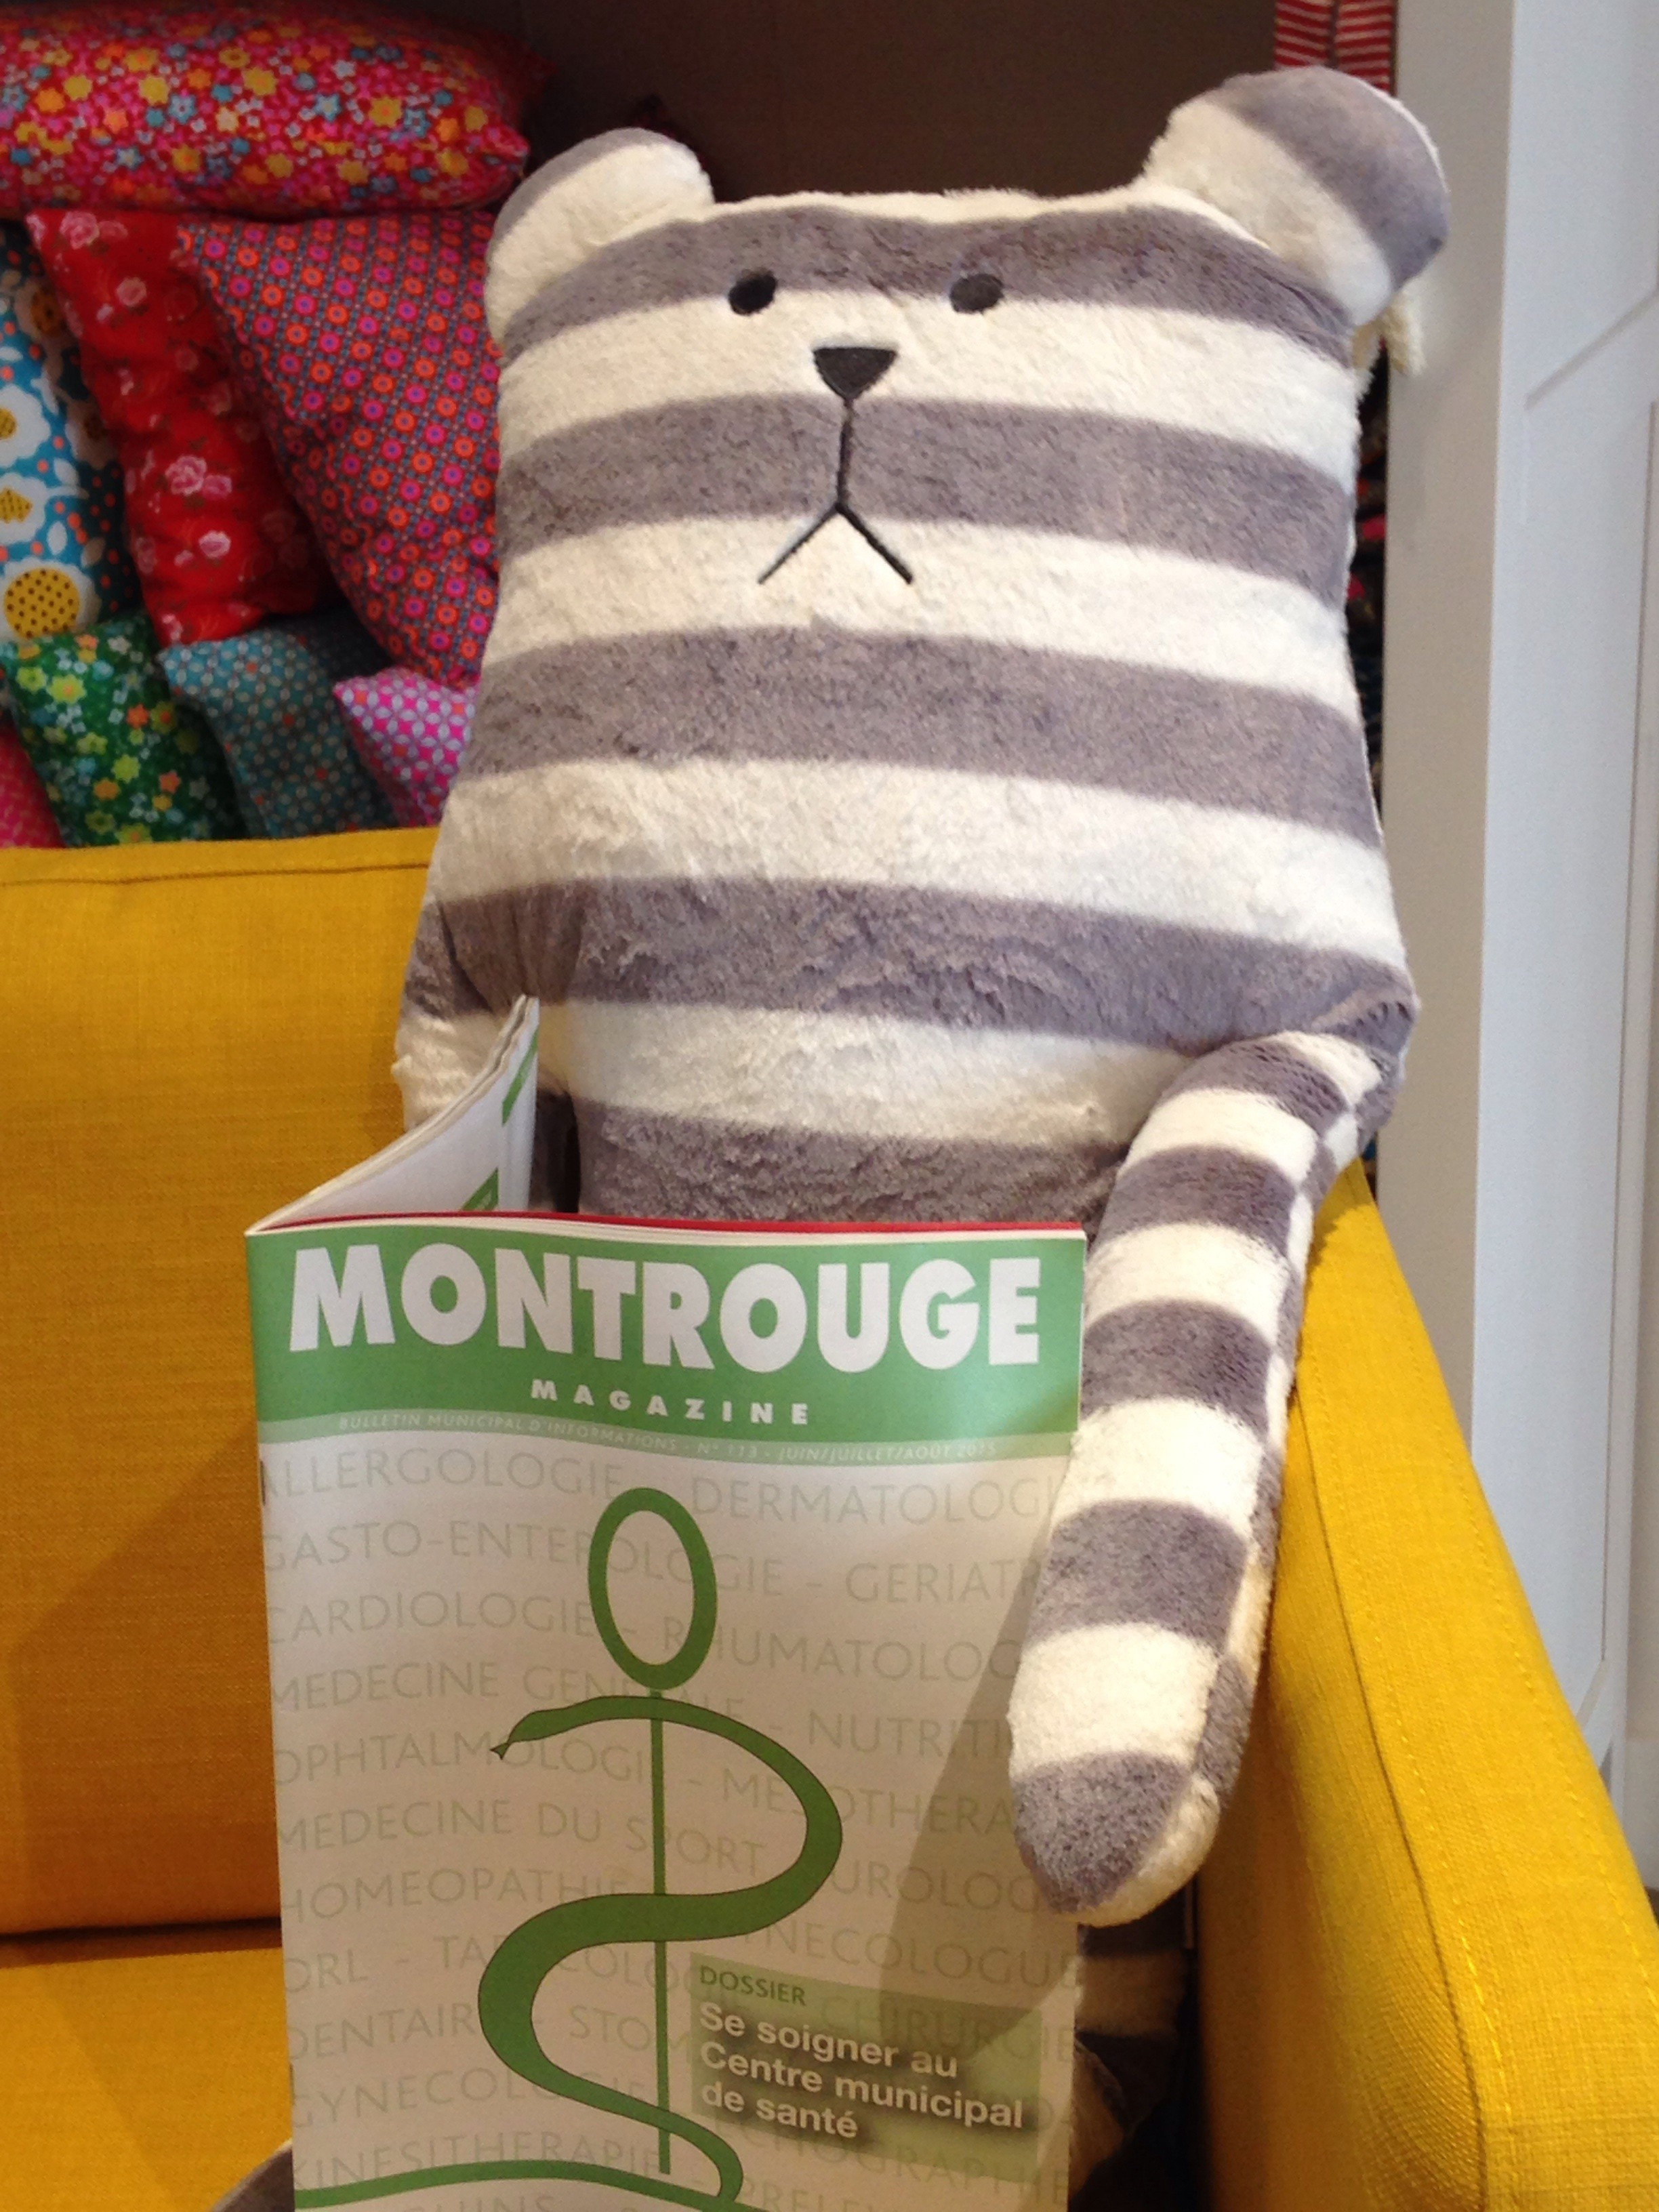 Montrouge mag